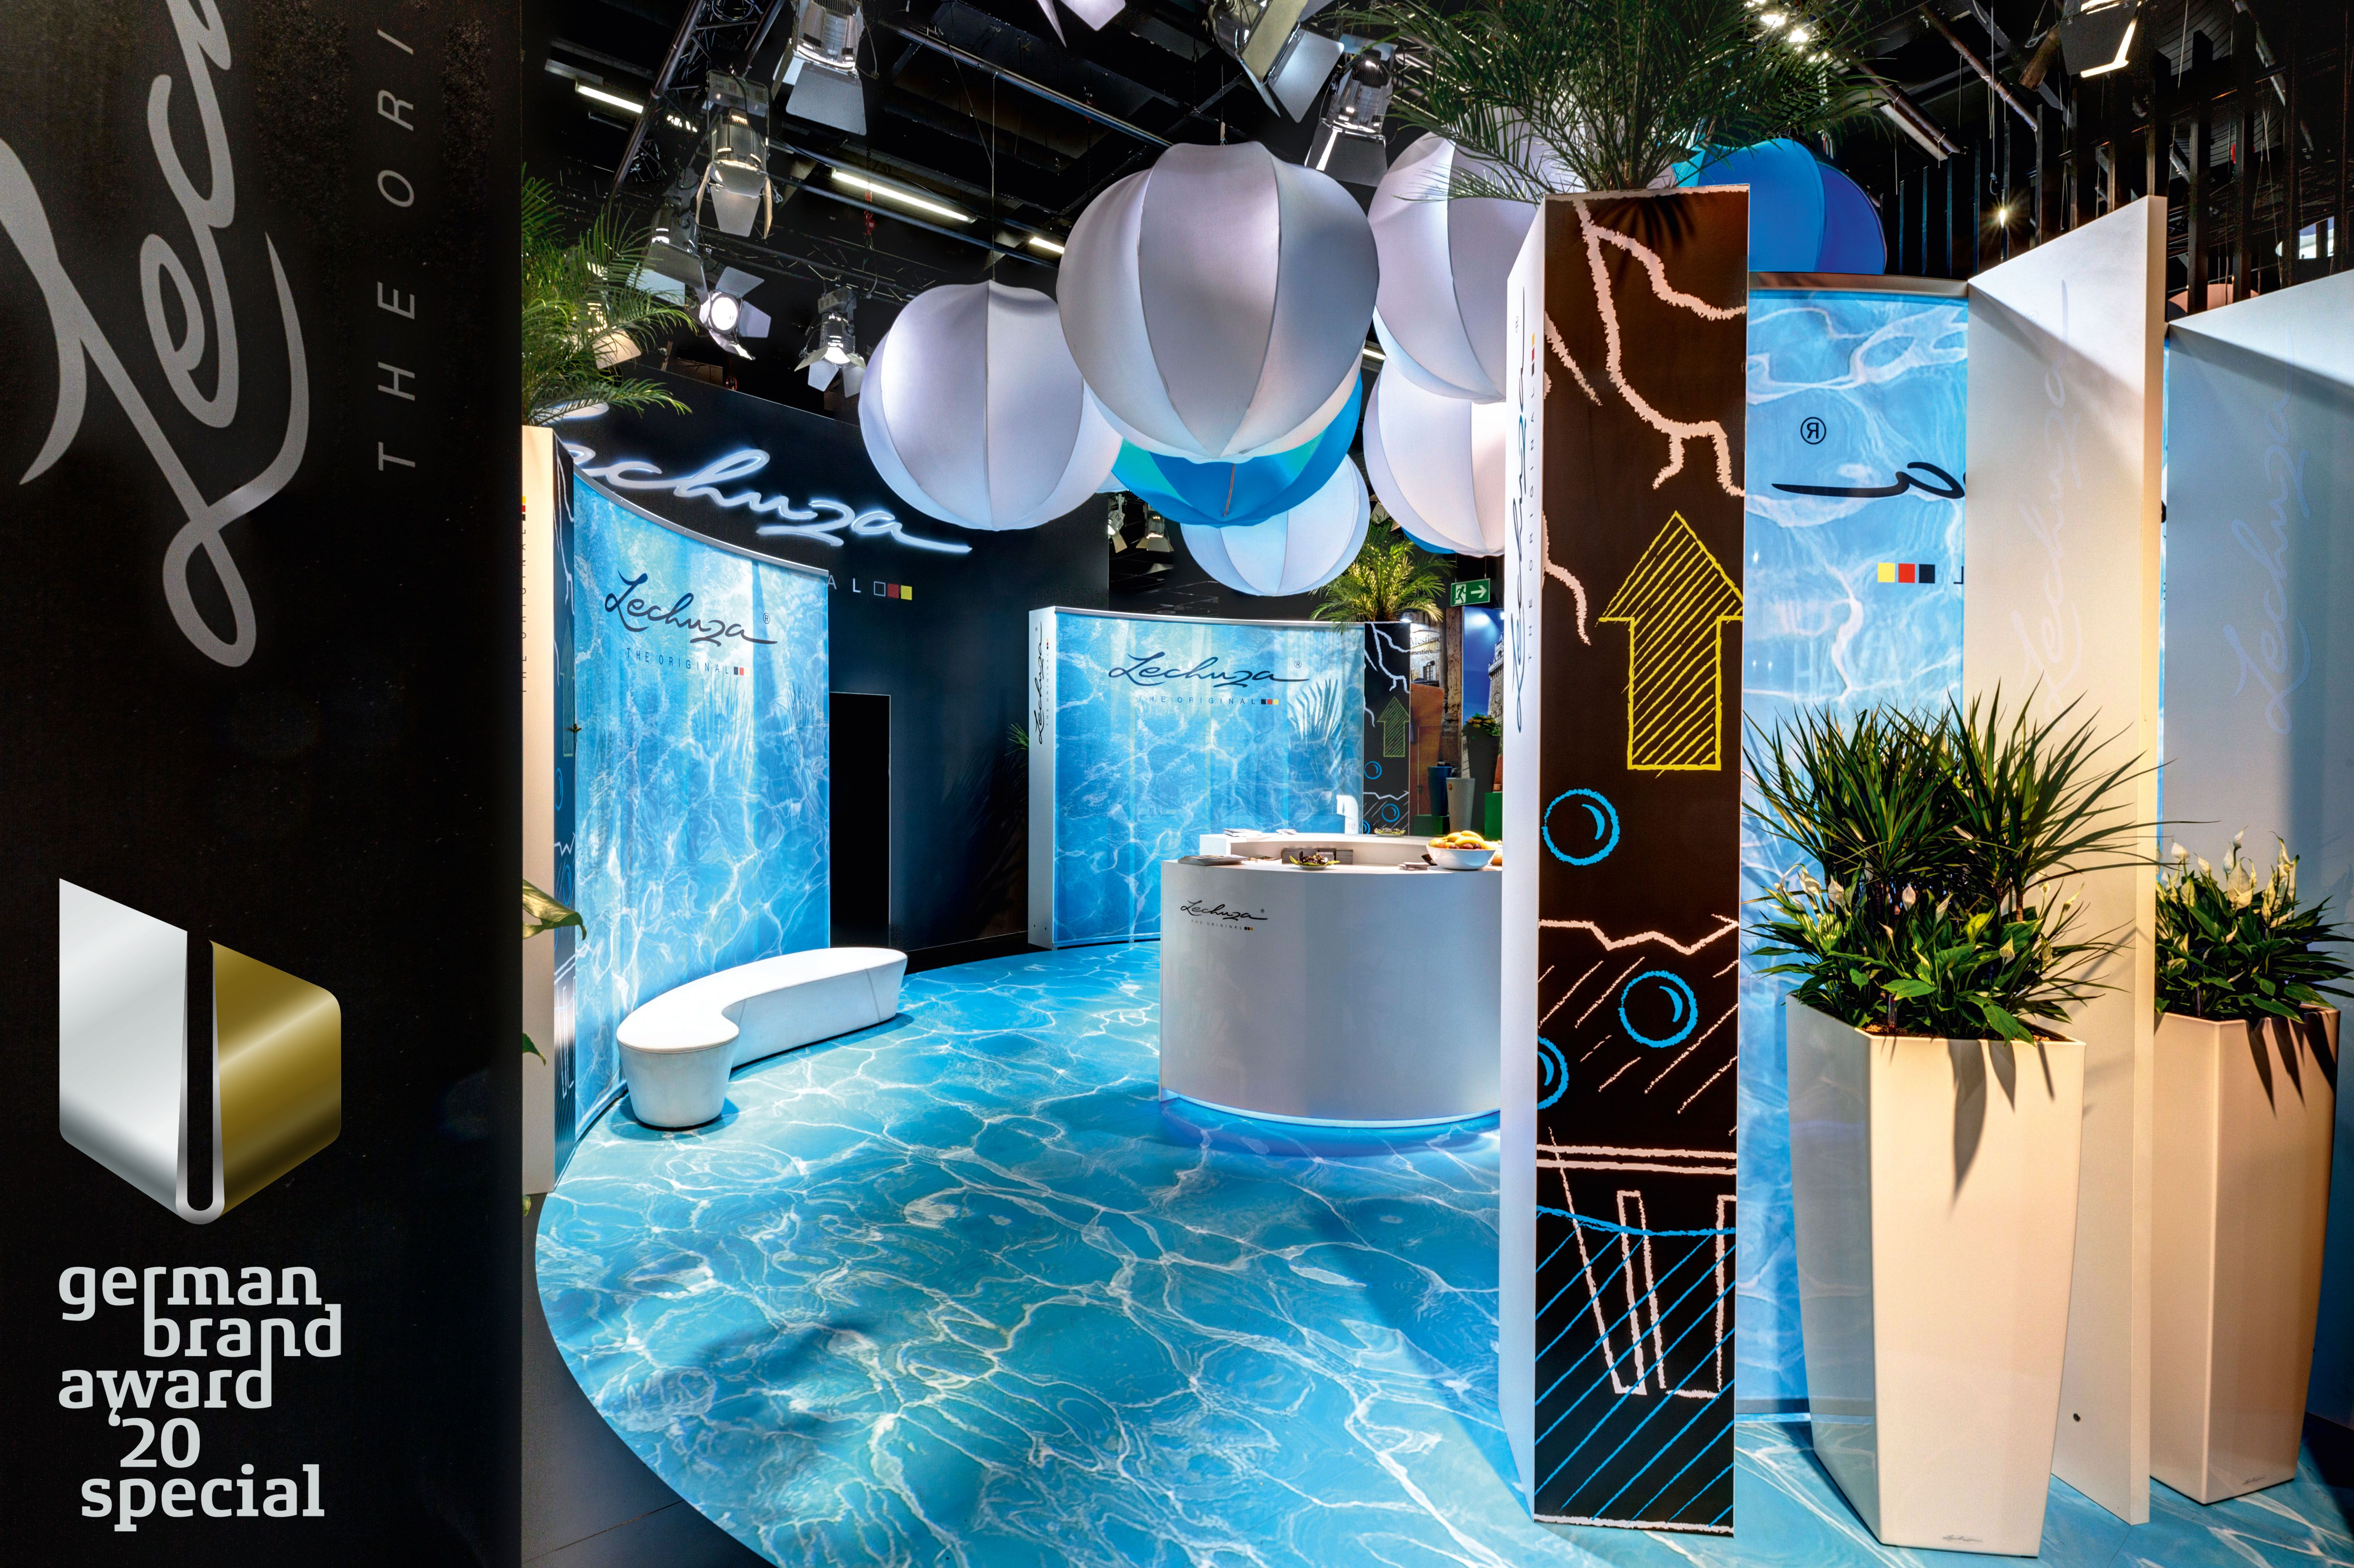 For The Geobra Brandstatter Group A Stylish Brand Appearance Was Developed For The Lechuza Brand The Expert For Beauti